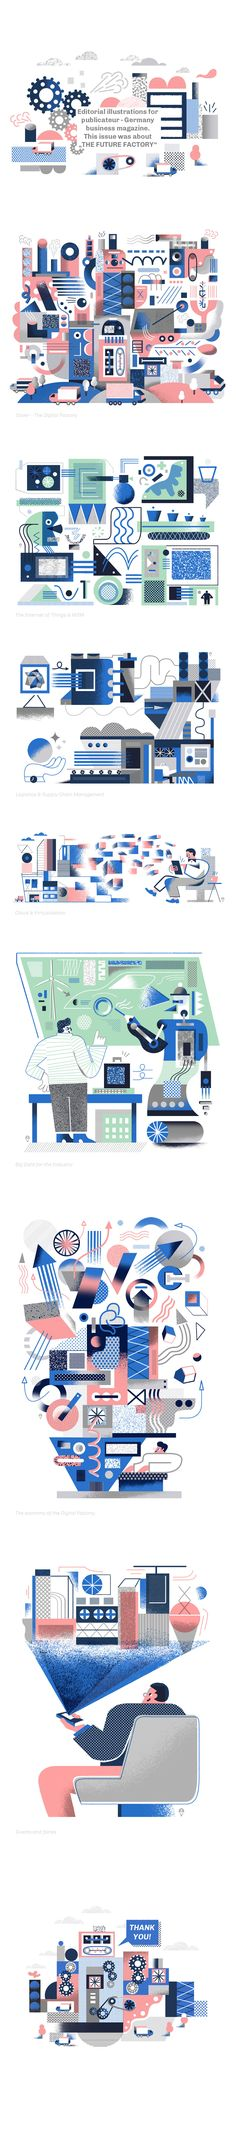 Editorial illustrations for publicateur - Germany business magazine